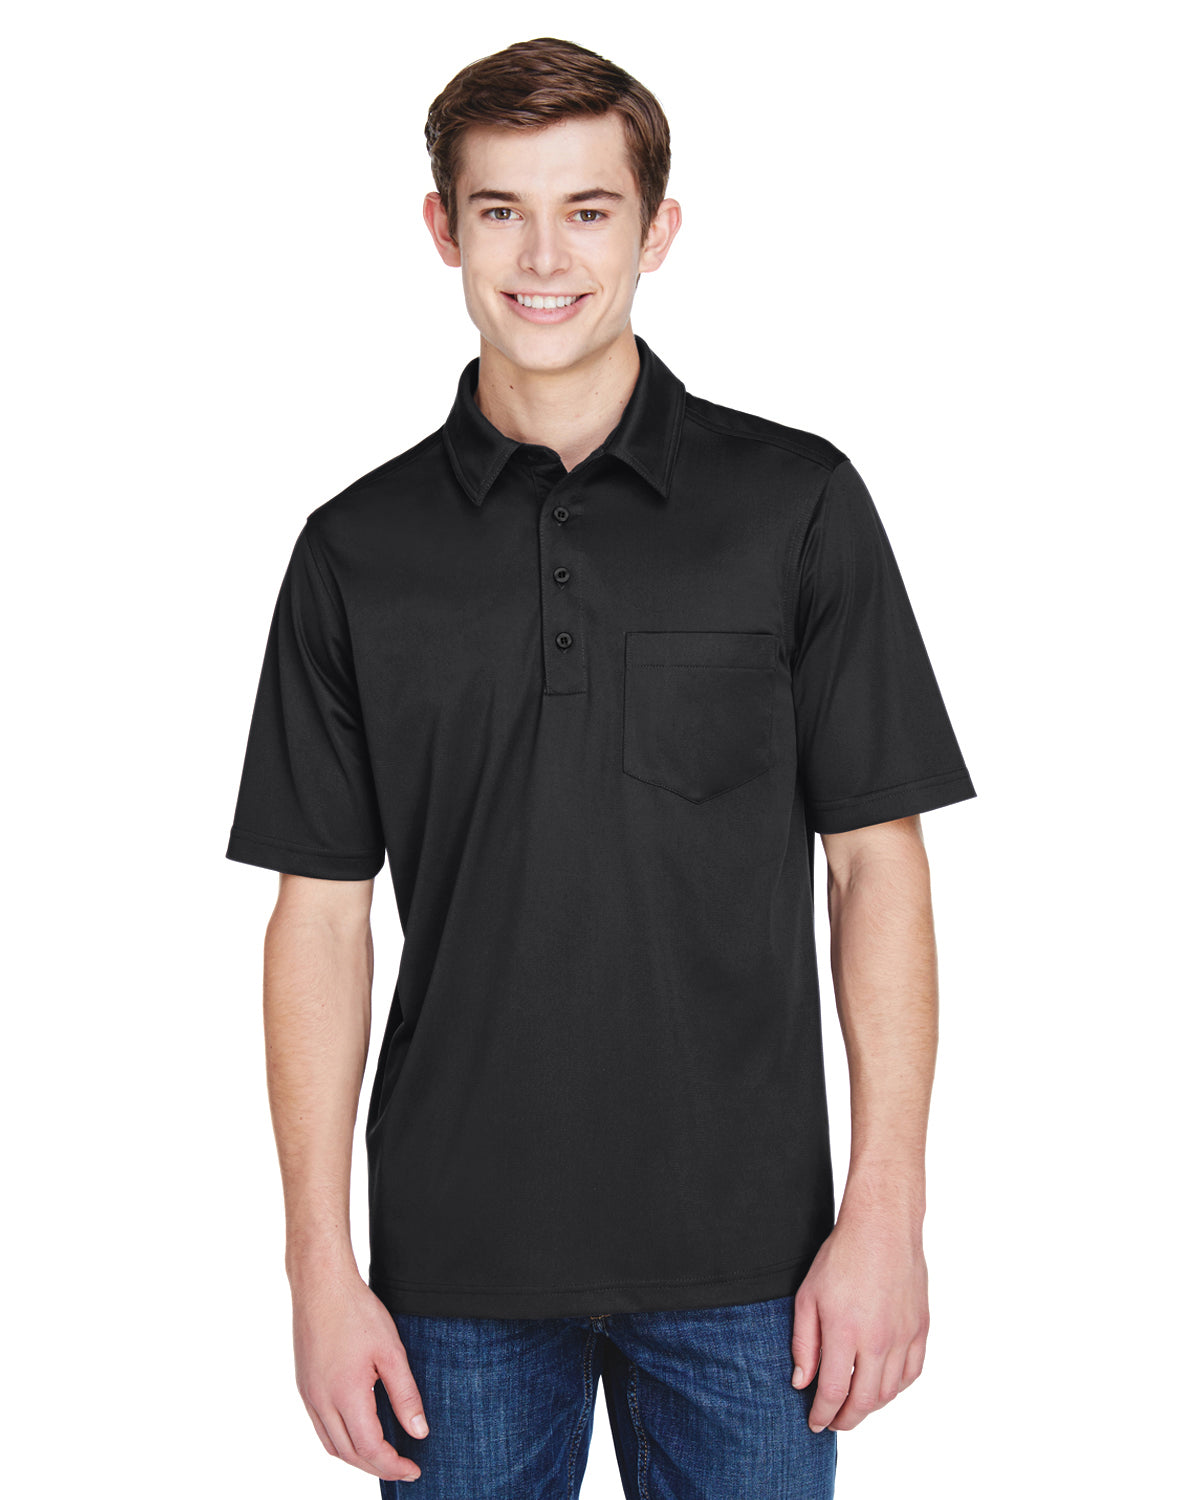 Rainwater's Straight Collar Pocket Knit Polo in Charcoal - Rainwater's Men's Clothing and Tuxedo Rental